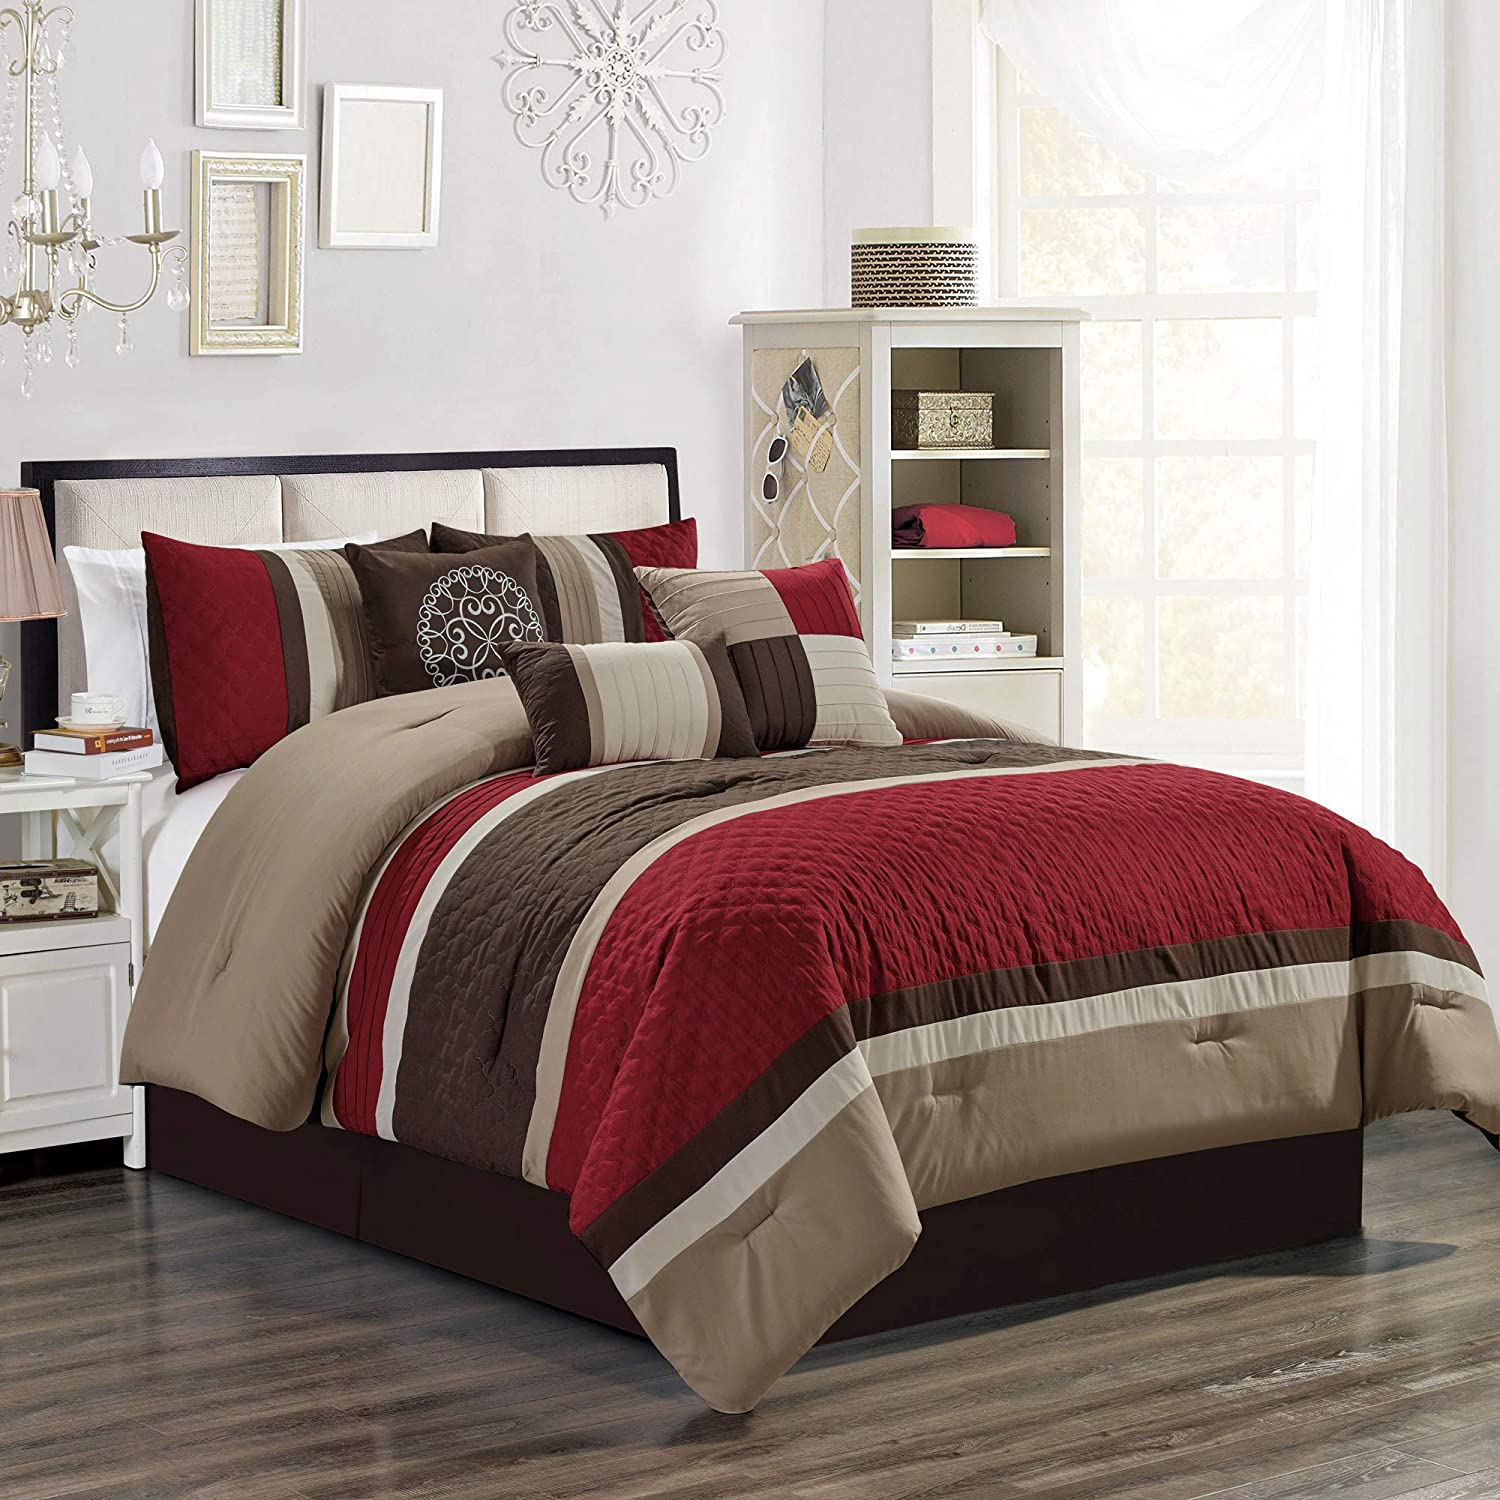 "Design Striped Pleated Bedding Comforter Set (90""x 92"" Queen, Burgundy Red)"